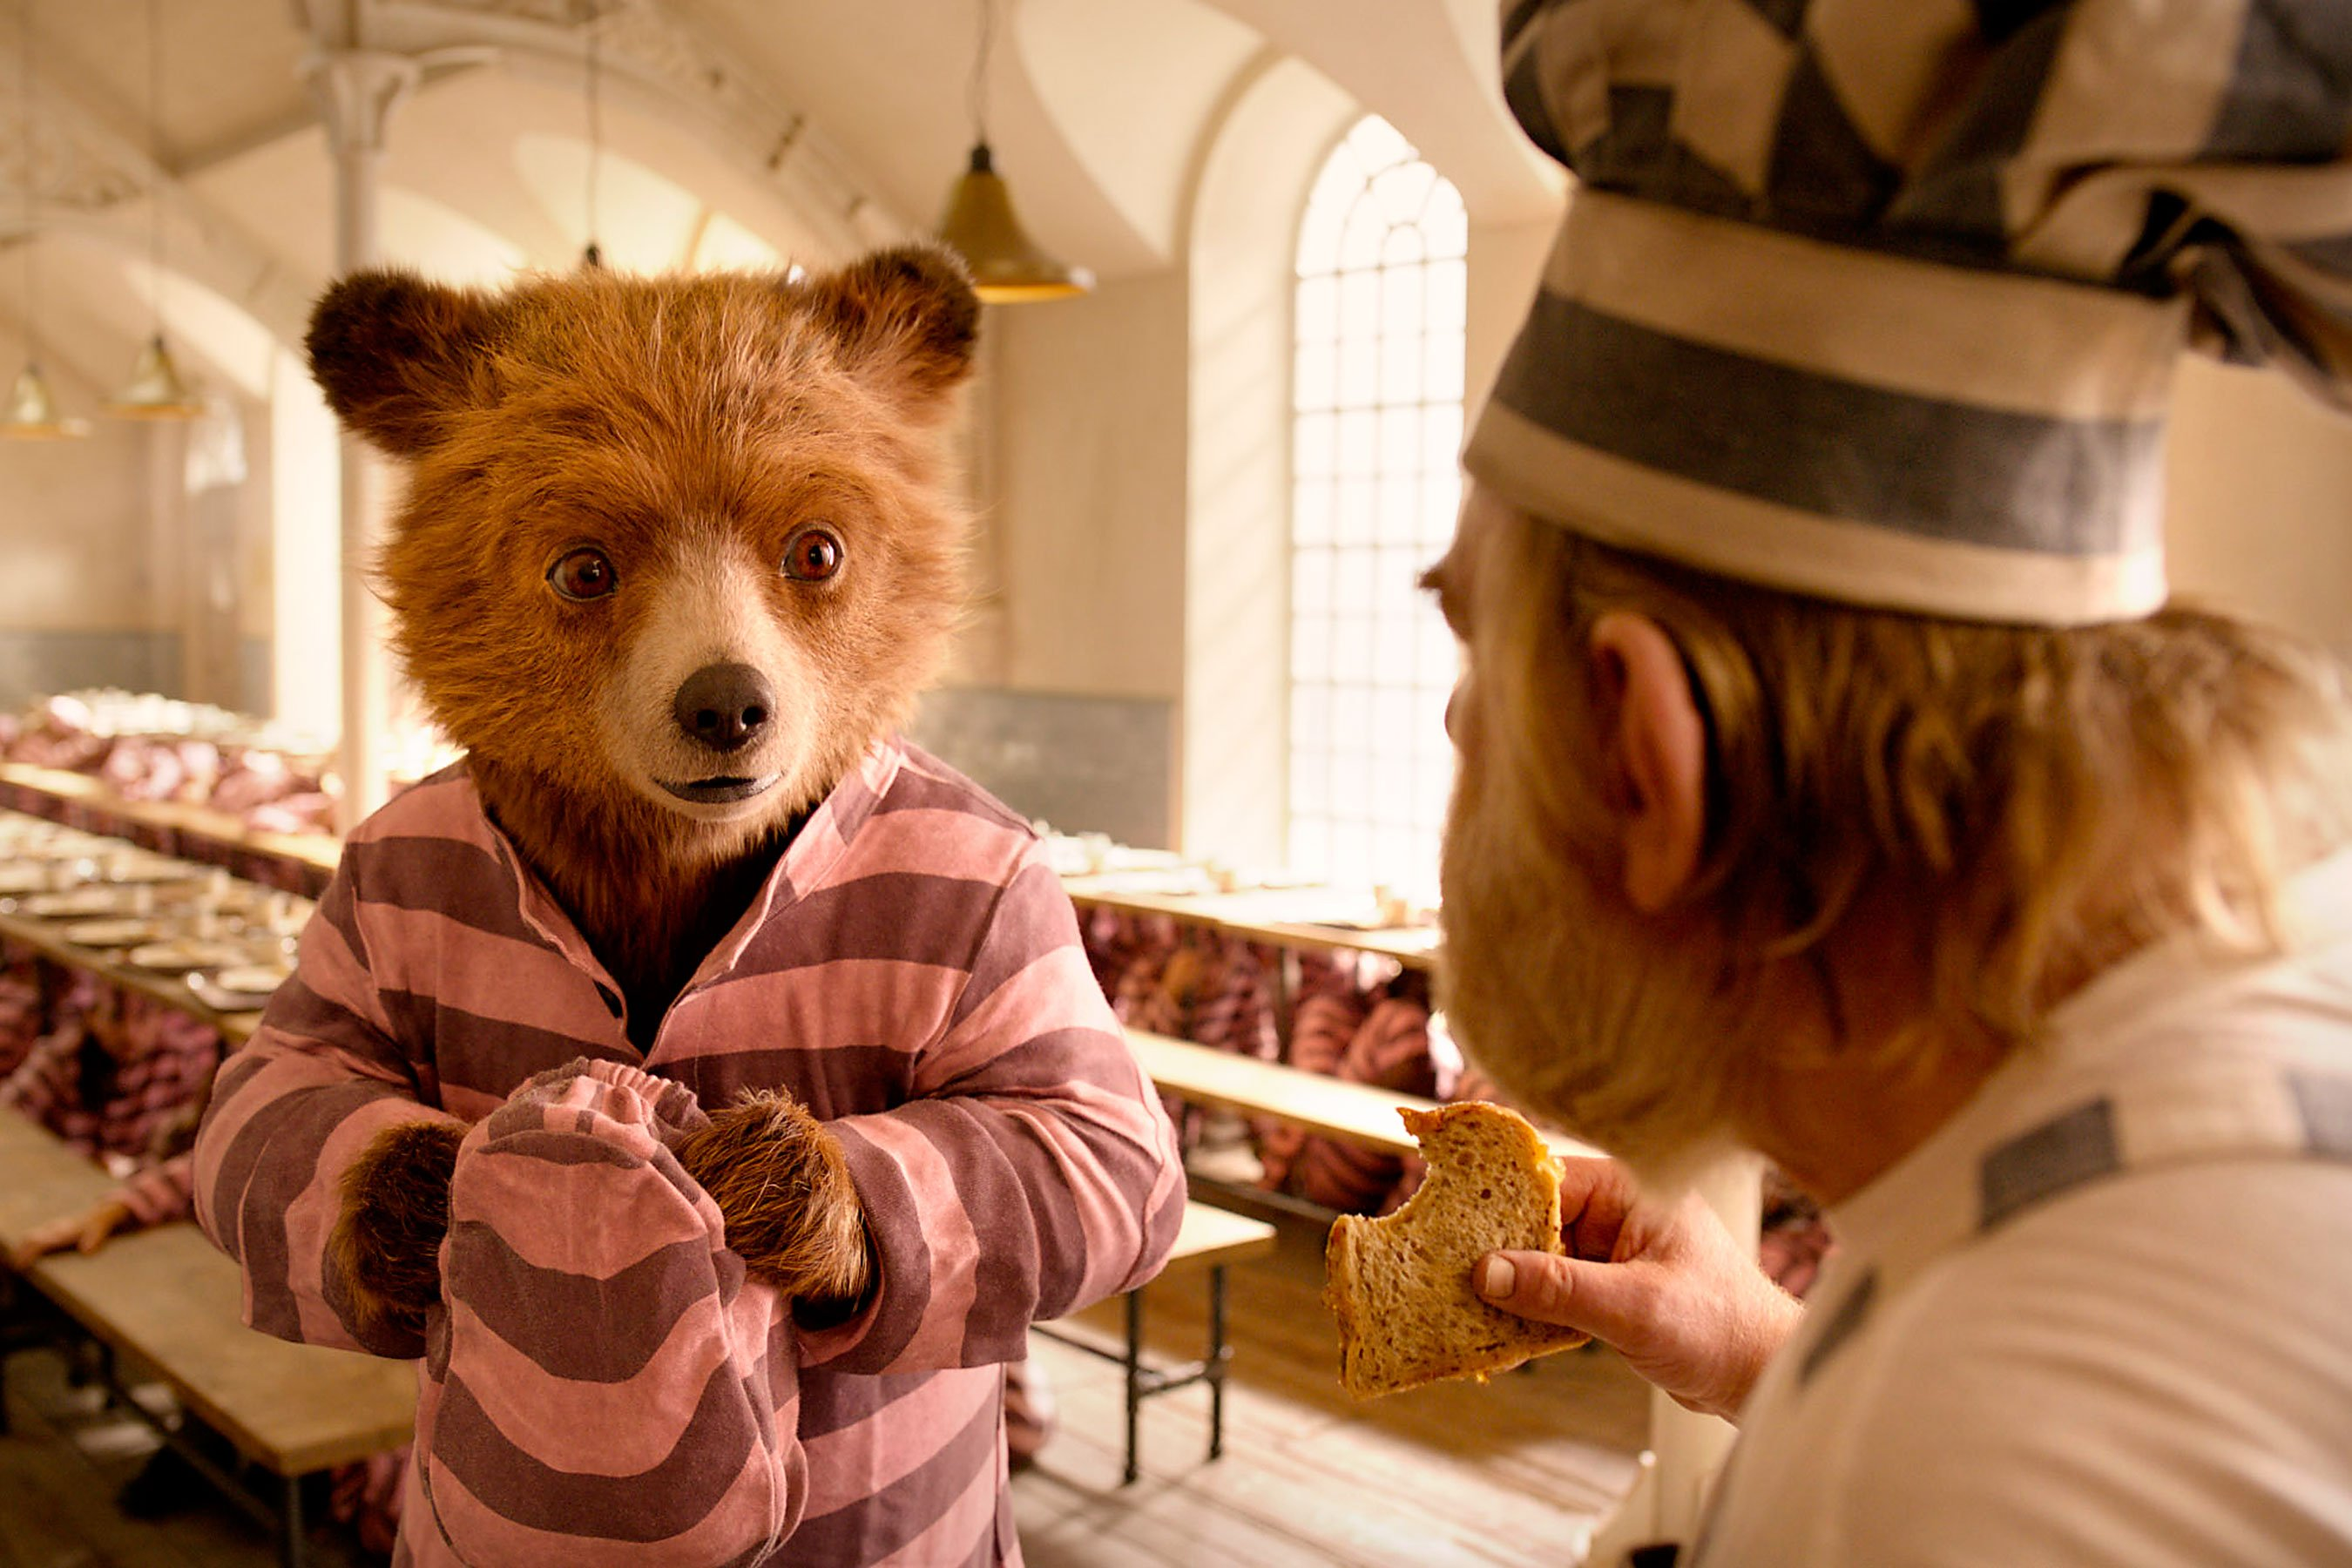 Paddington 2 review: Sequel is a warm, fuzzy joy